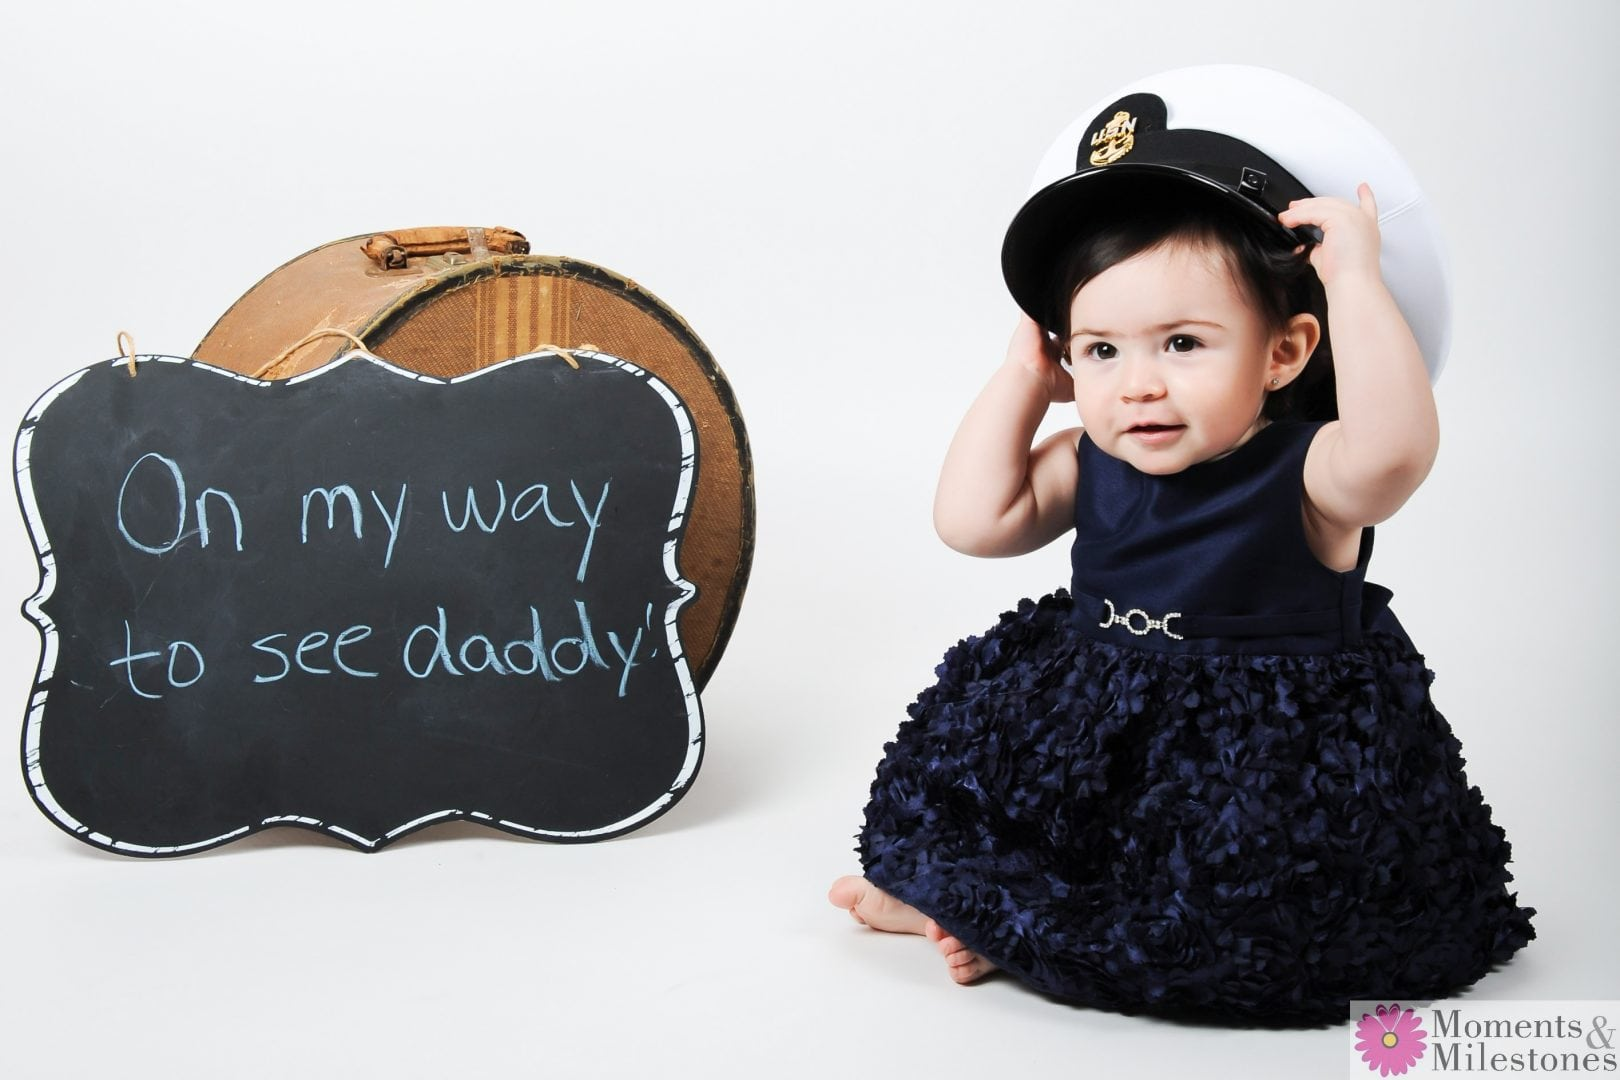 Daddy-Daughter Session for Veteran's Day